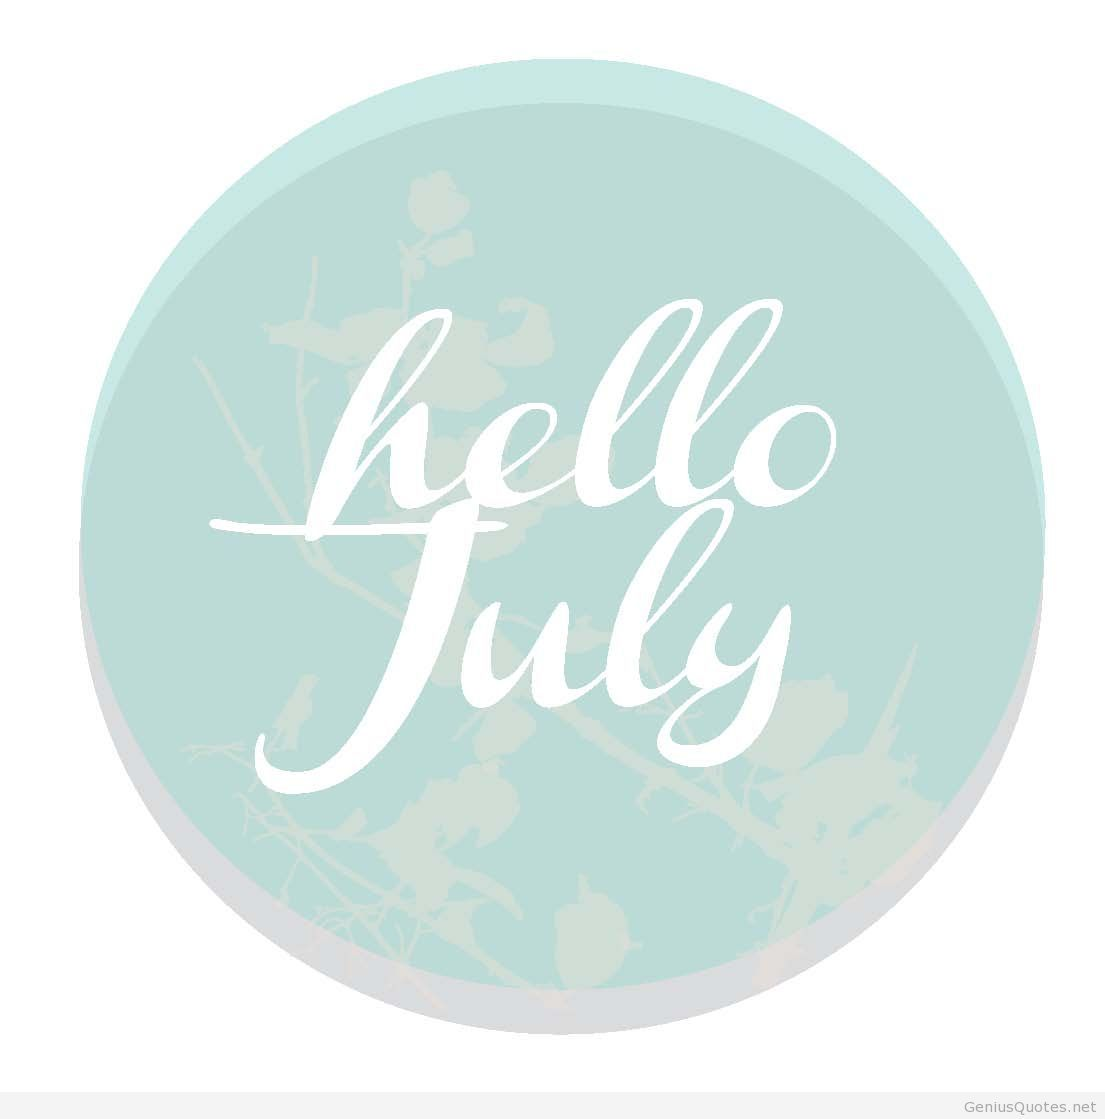 1105x1119 ▷ Hello July awesome hd wallpaper quote - Genius Quotes